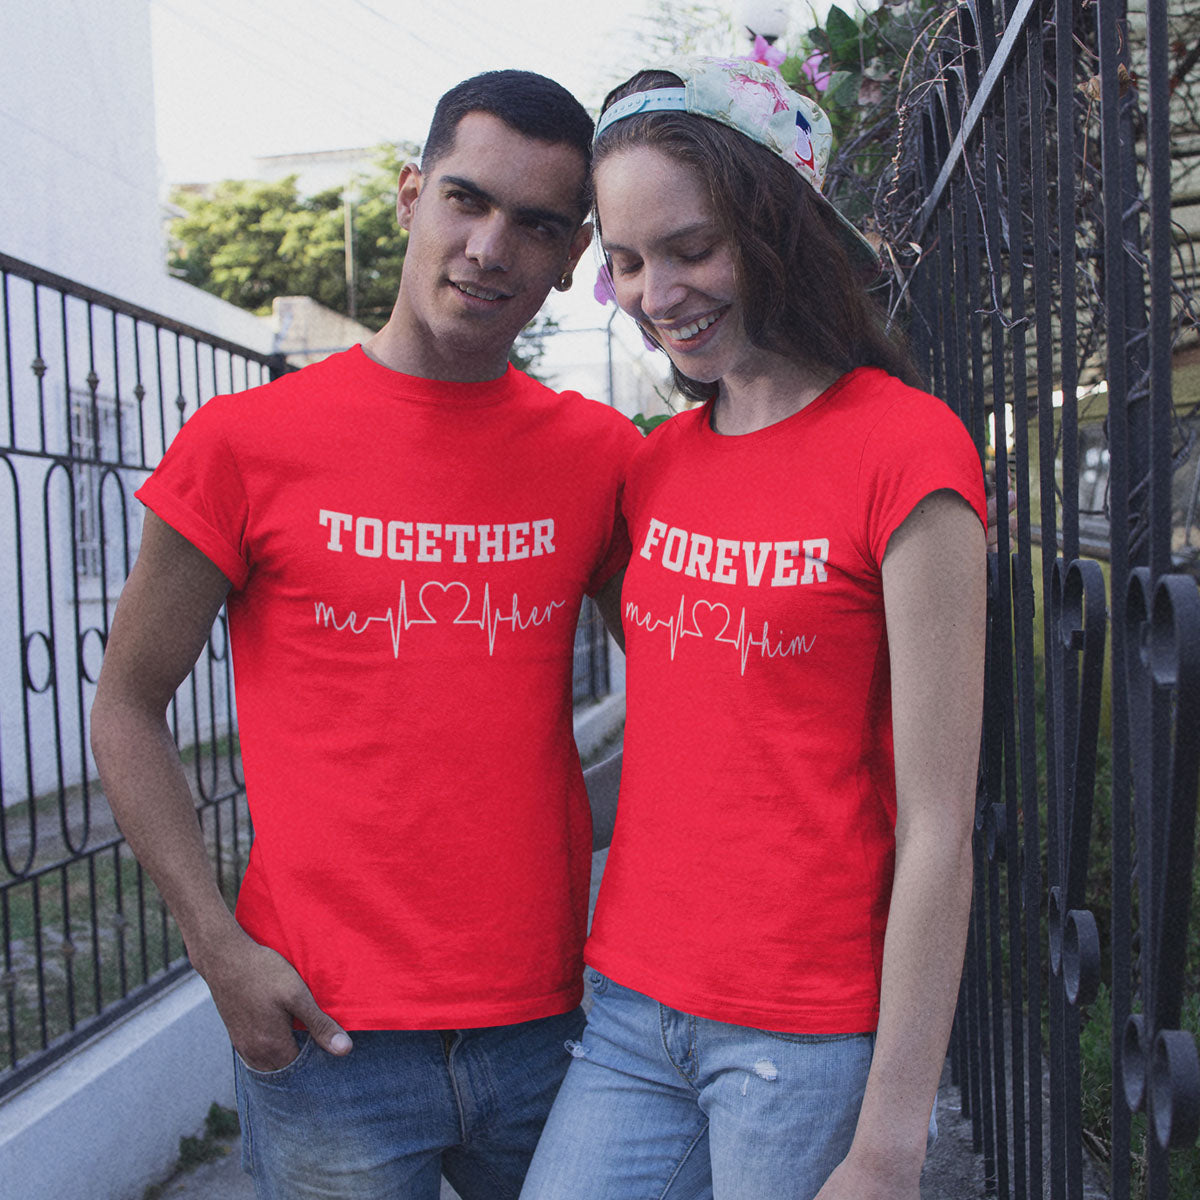 Sprinklecart Set of 2 Cotton T Shirt | Together Forever Printed T Shirts for Couples